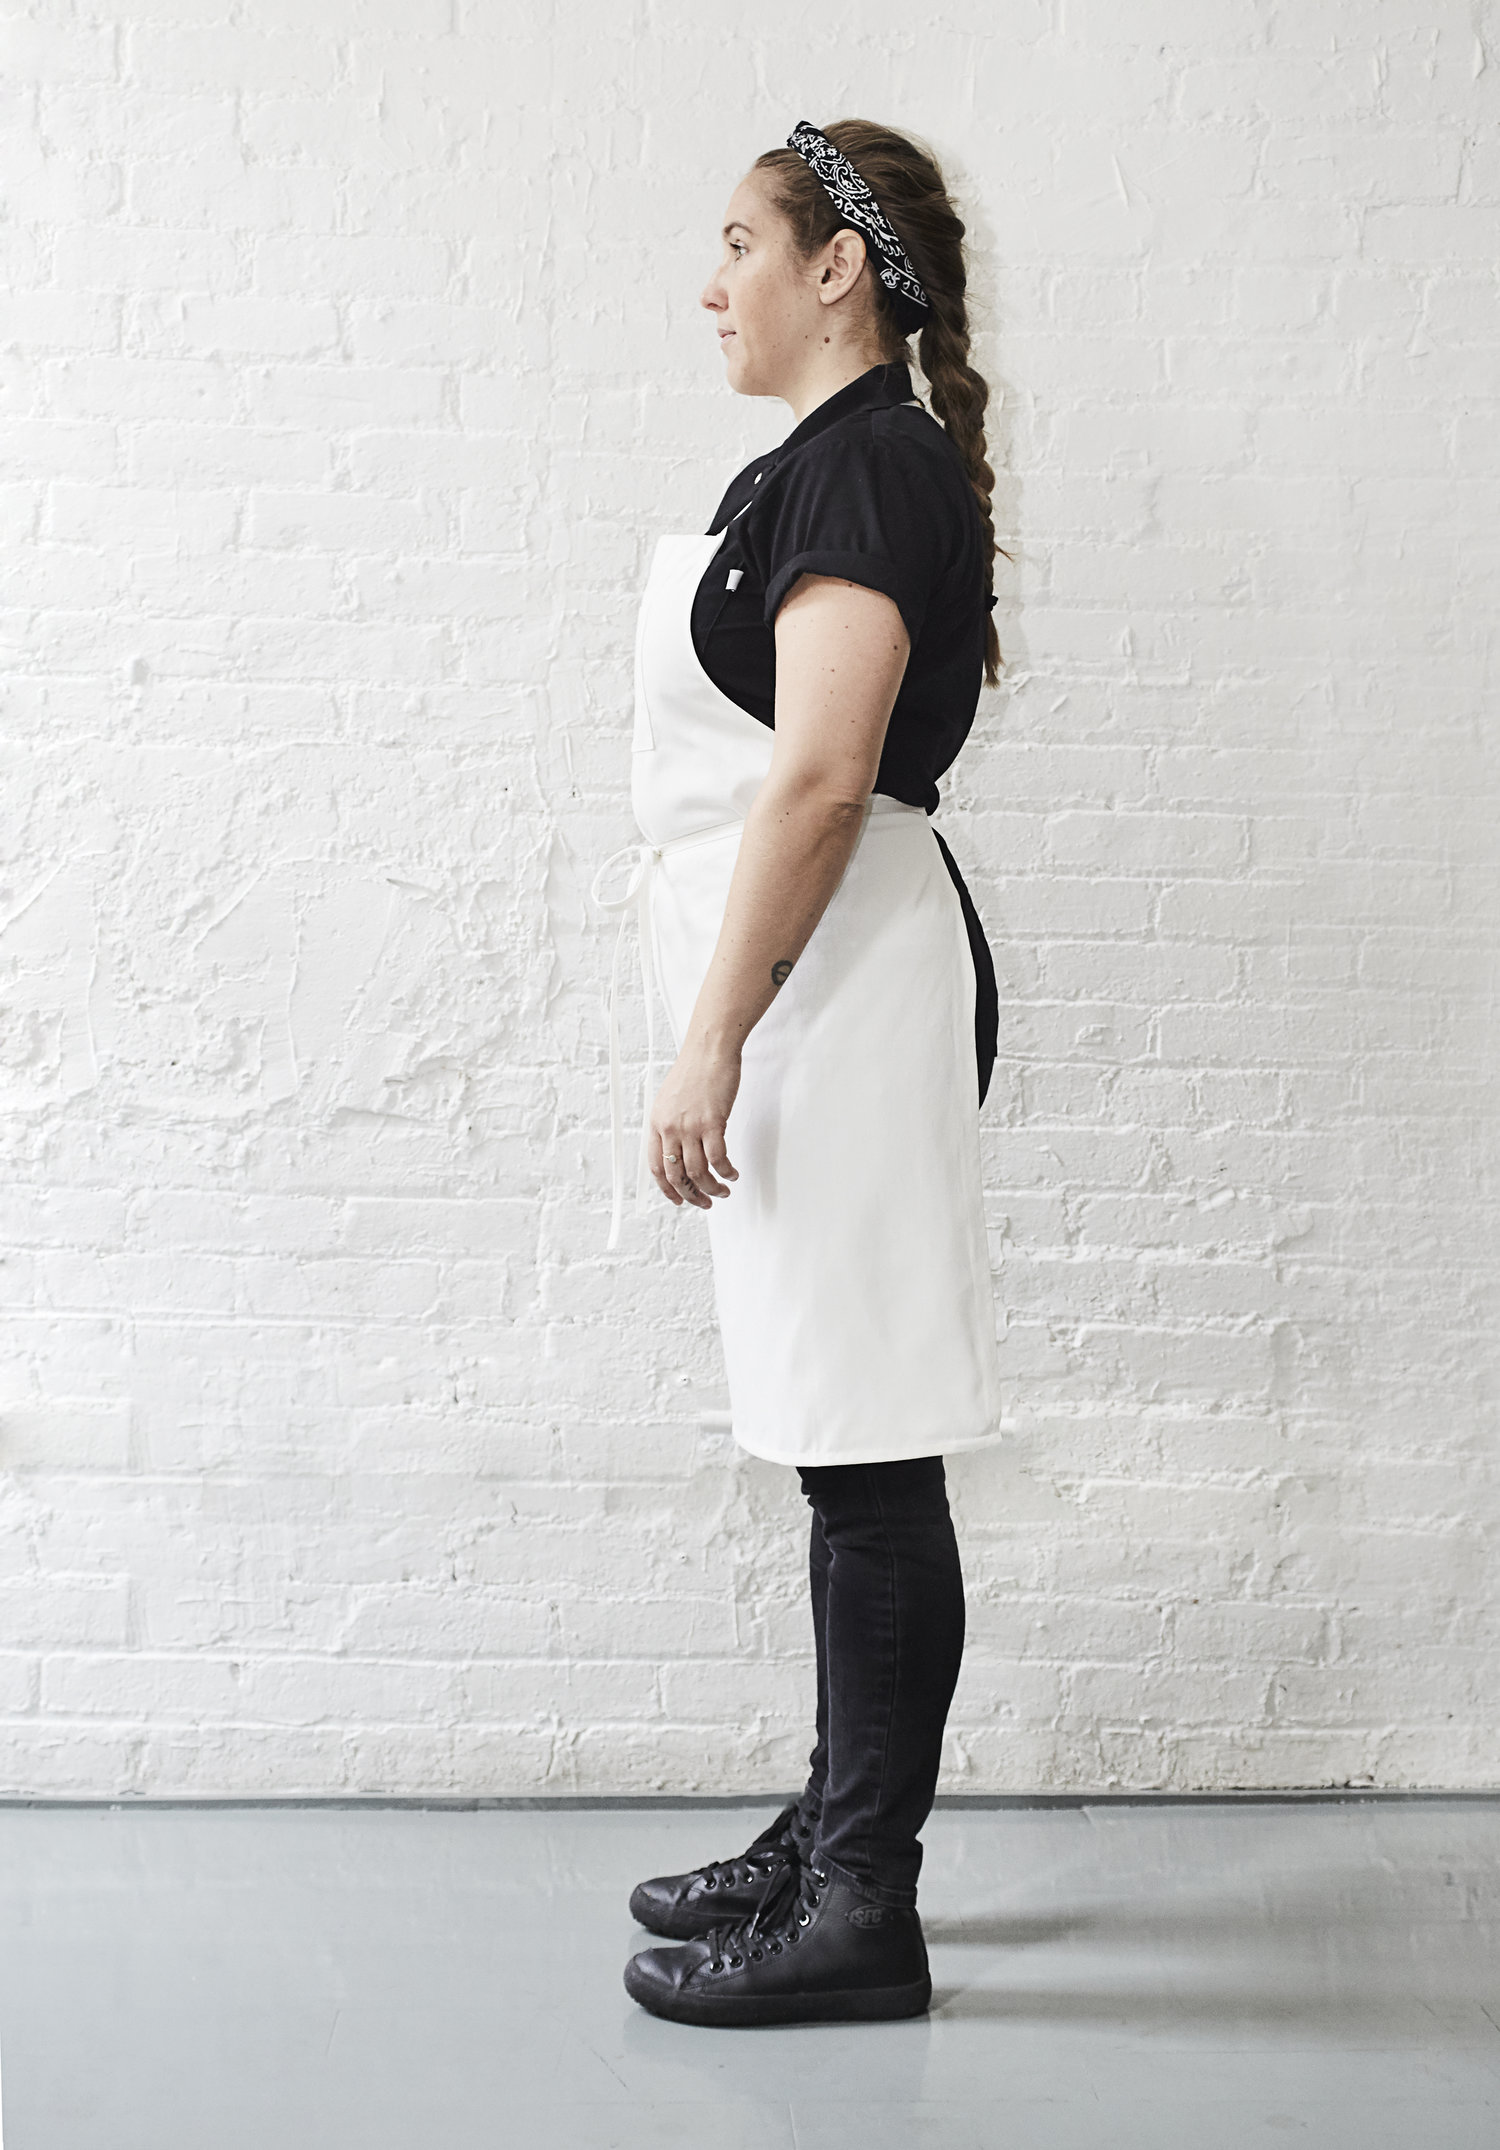 ALL-DAY KITCHEN Apron in White — C A M C A M